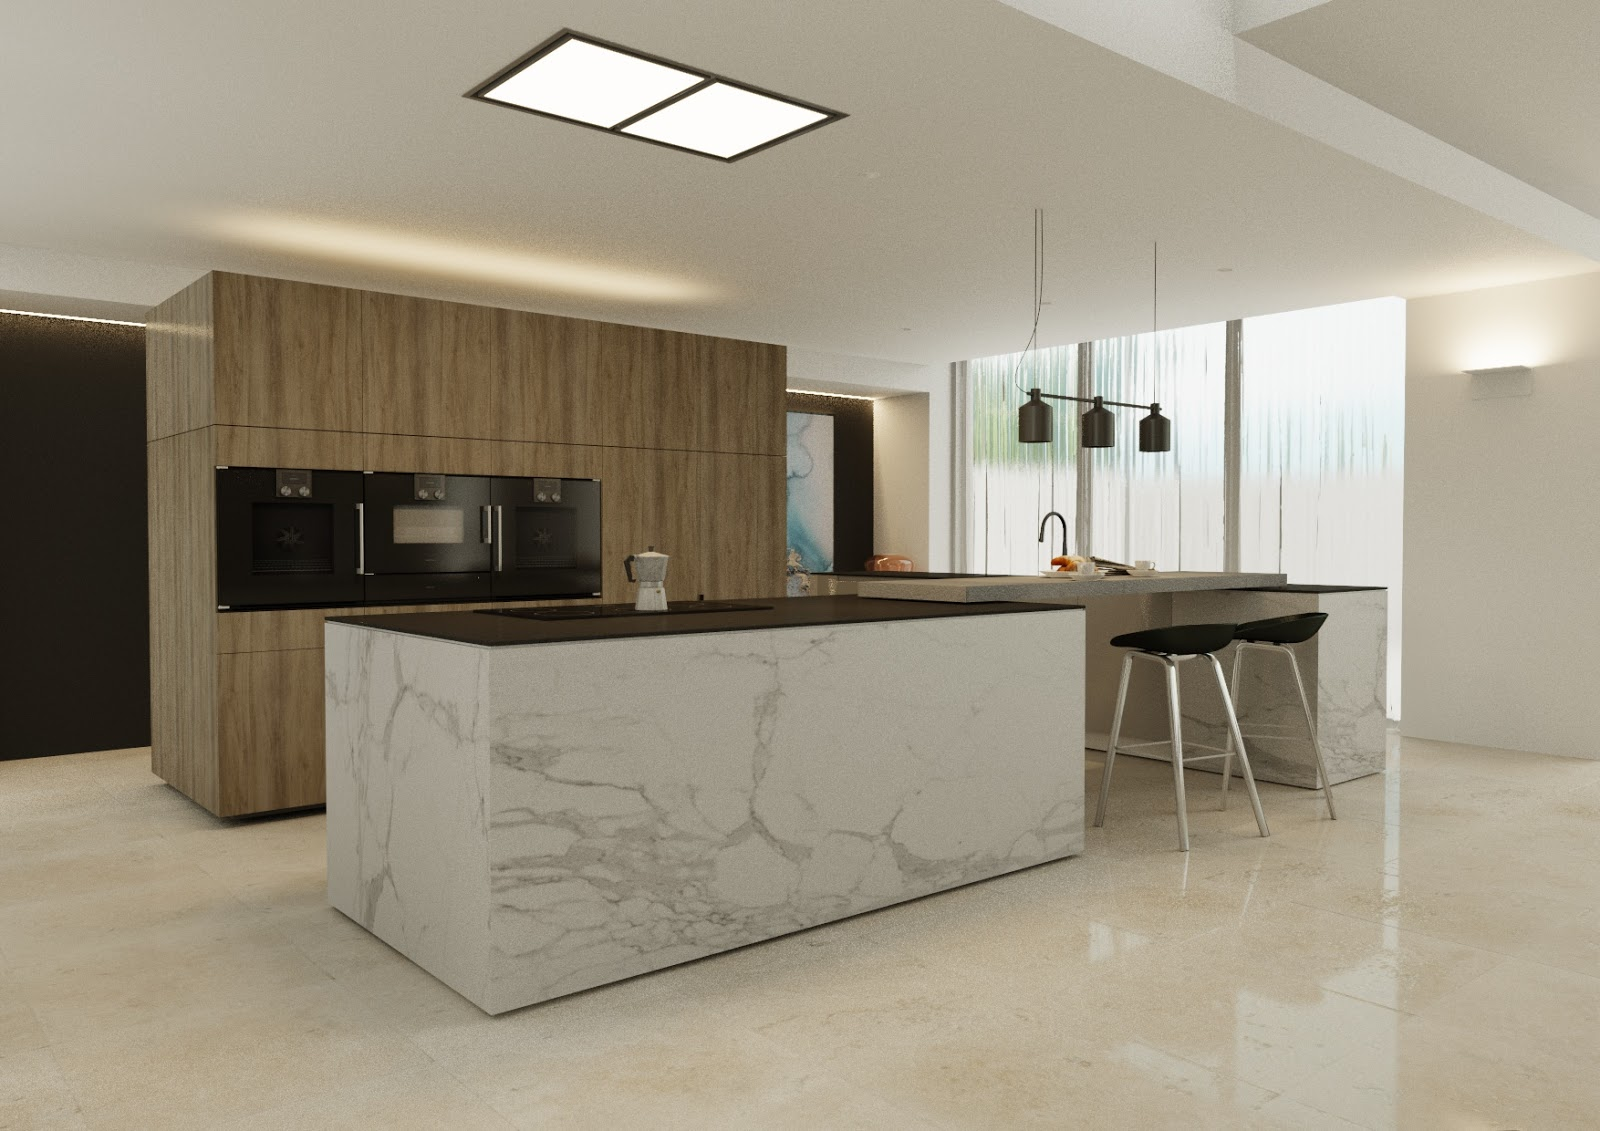 Minosa Modern Kitchen Design Requires Contemporary Approach - Modern kitchen and bathroom designs